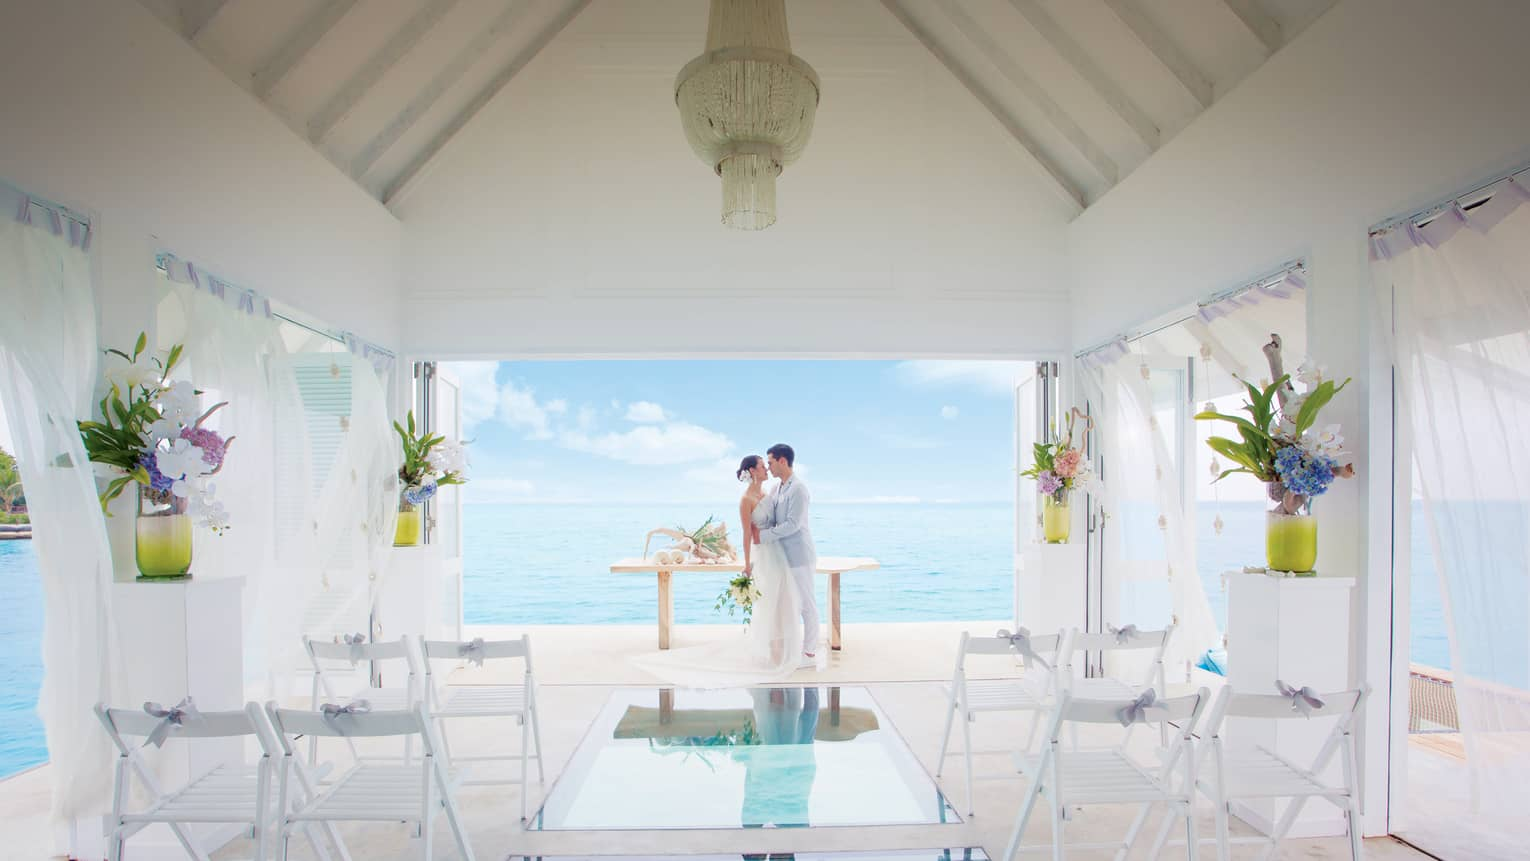 Bride and groom embrace at edge of small white bungalow with glass floors looking down into blue lagoon